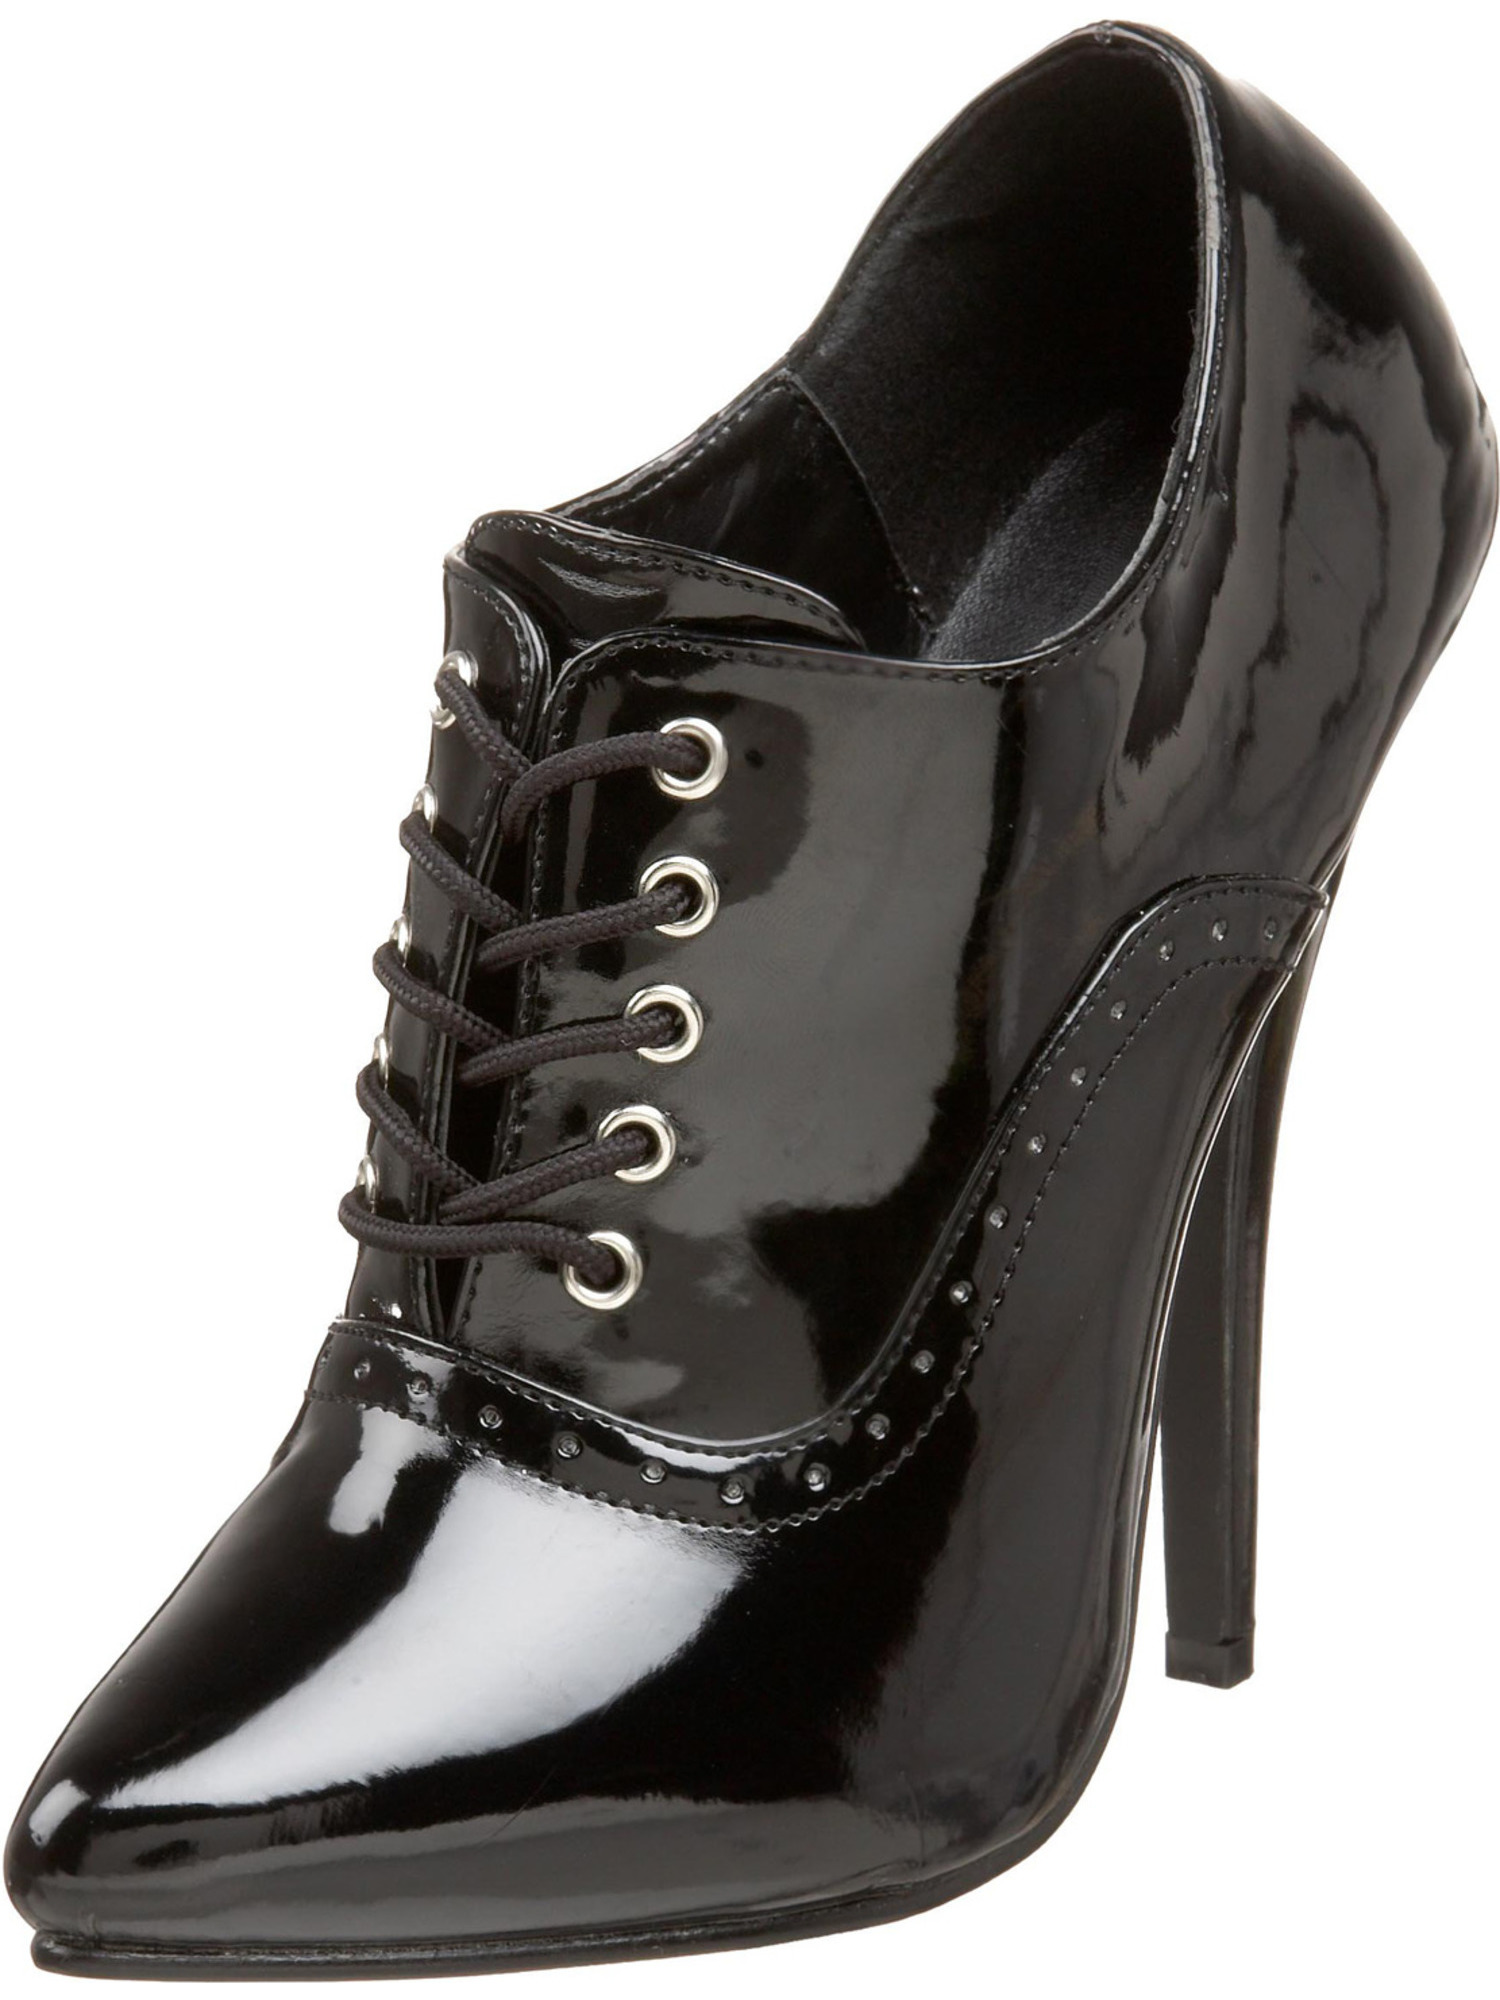 Black Patent Oxford High Heels with Single Sole and 6 Inch Heels